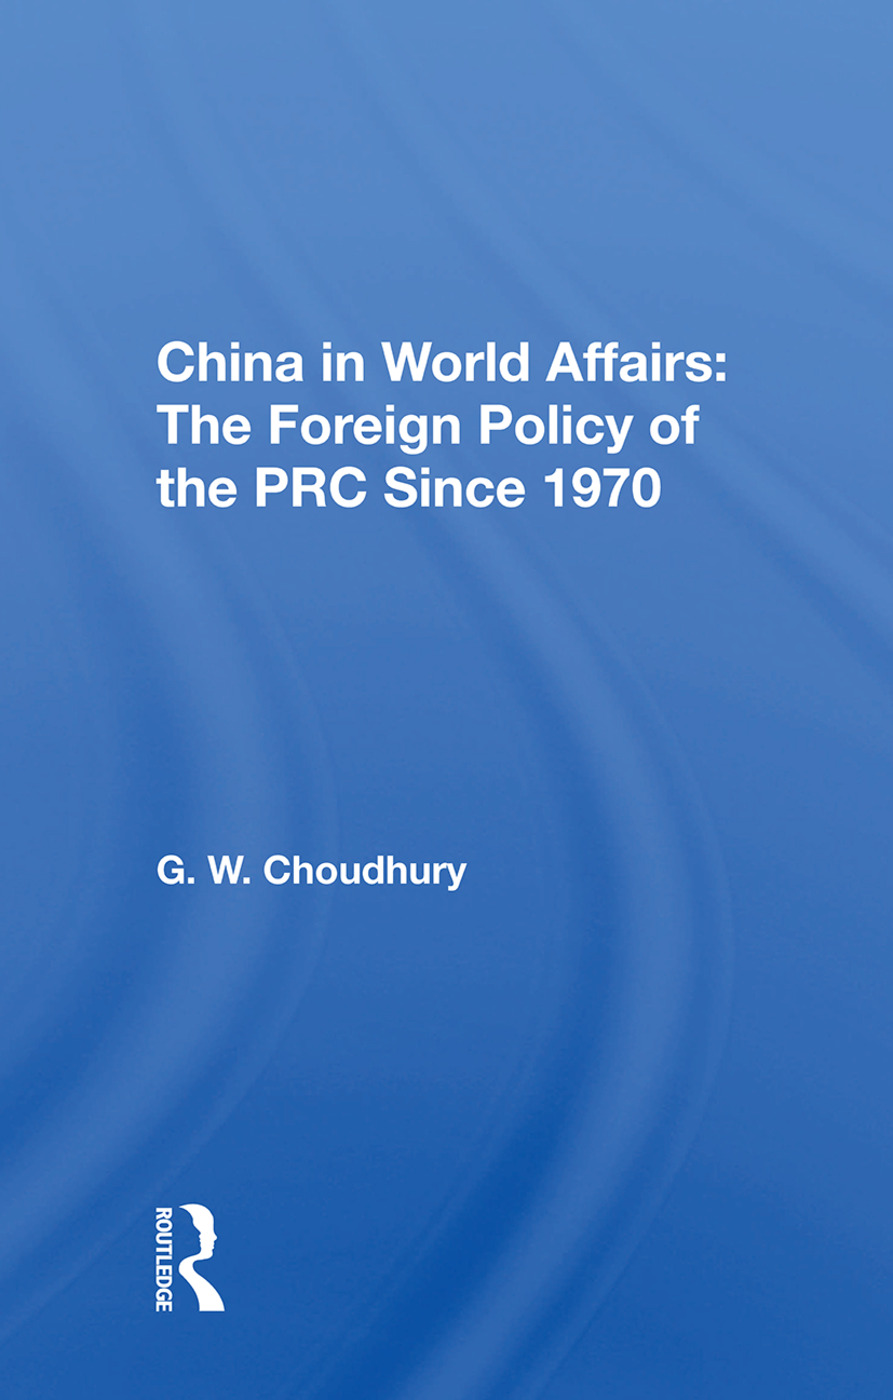 China In World Affairs: The Foreign Policy Of The Prc Since 1970 book cover